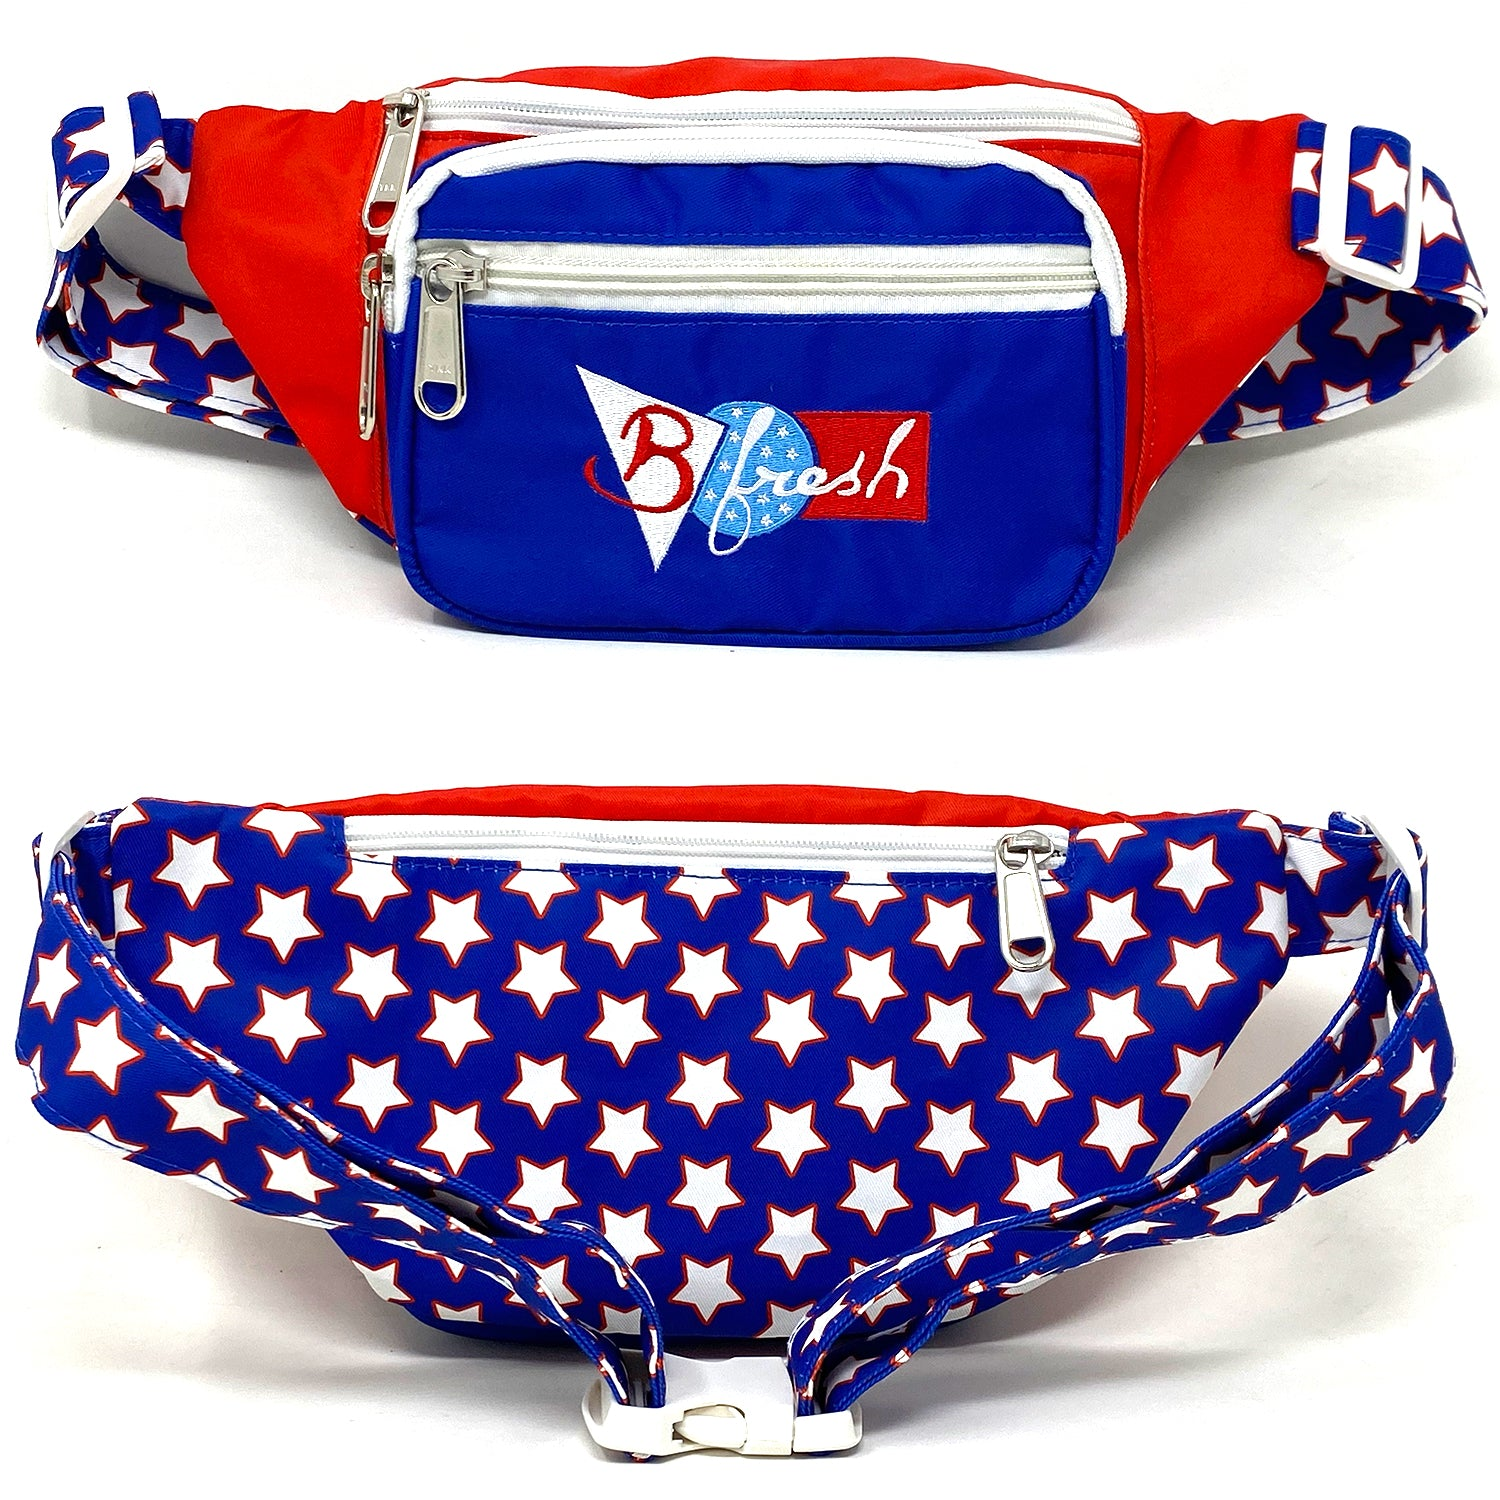 The Presidential Fanny Pack